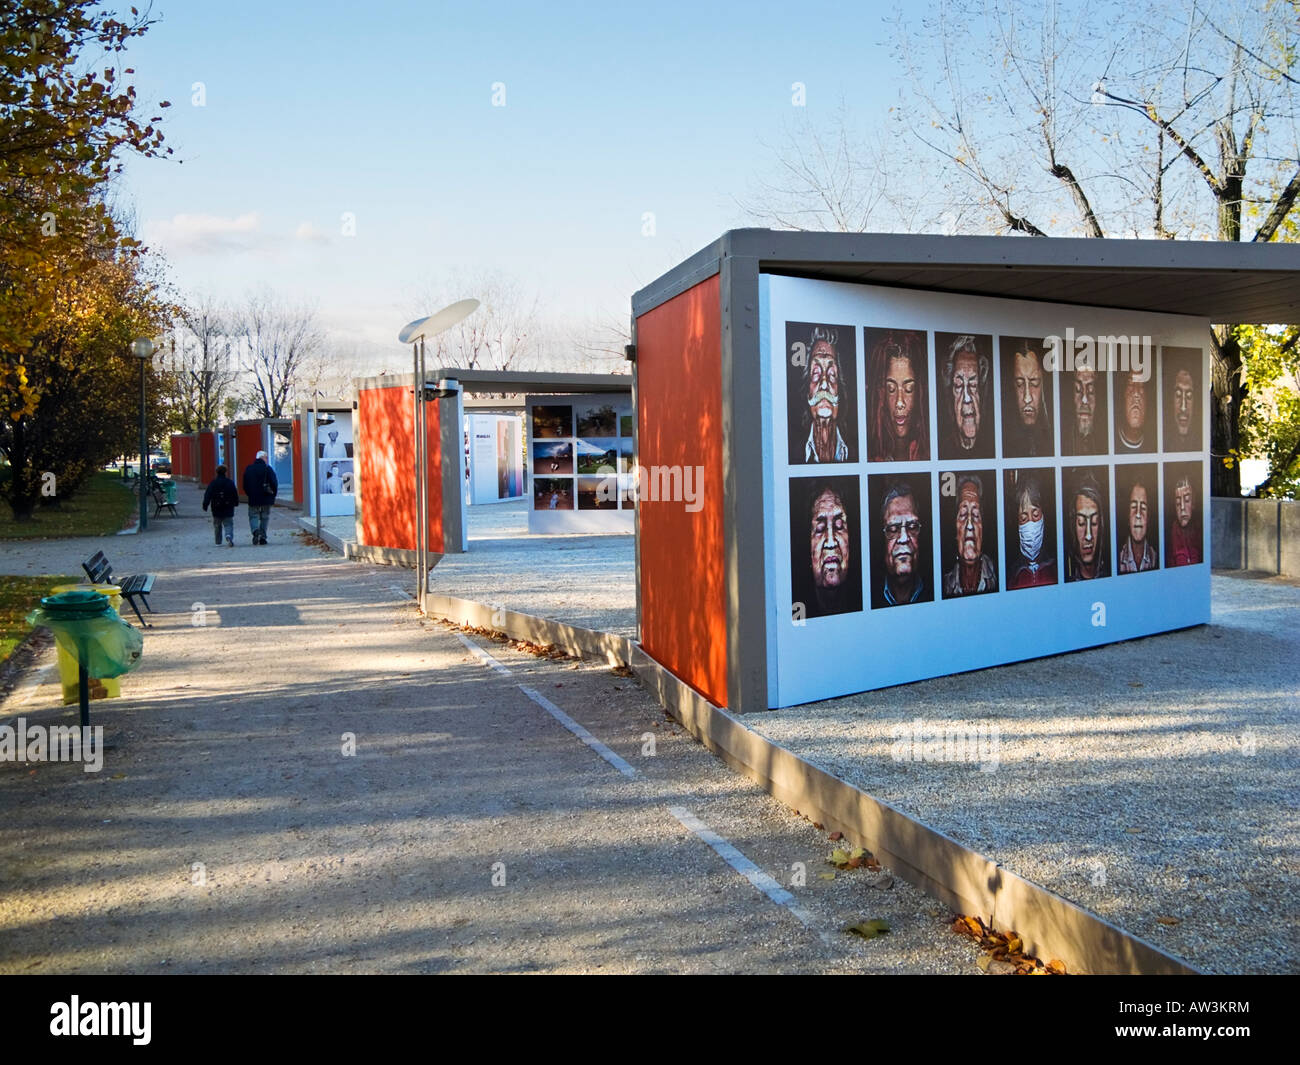 Open air art gallery exhibition at Quai Branly on the Left Bank of the River Seine, Paris, France, Europe - Stock Image